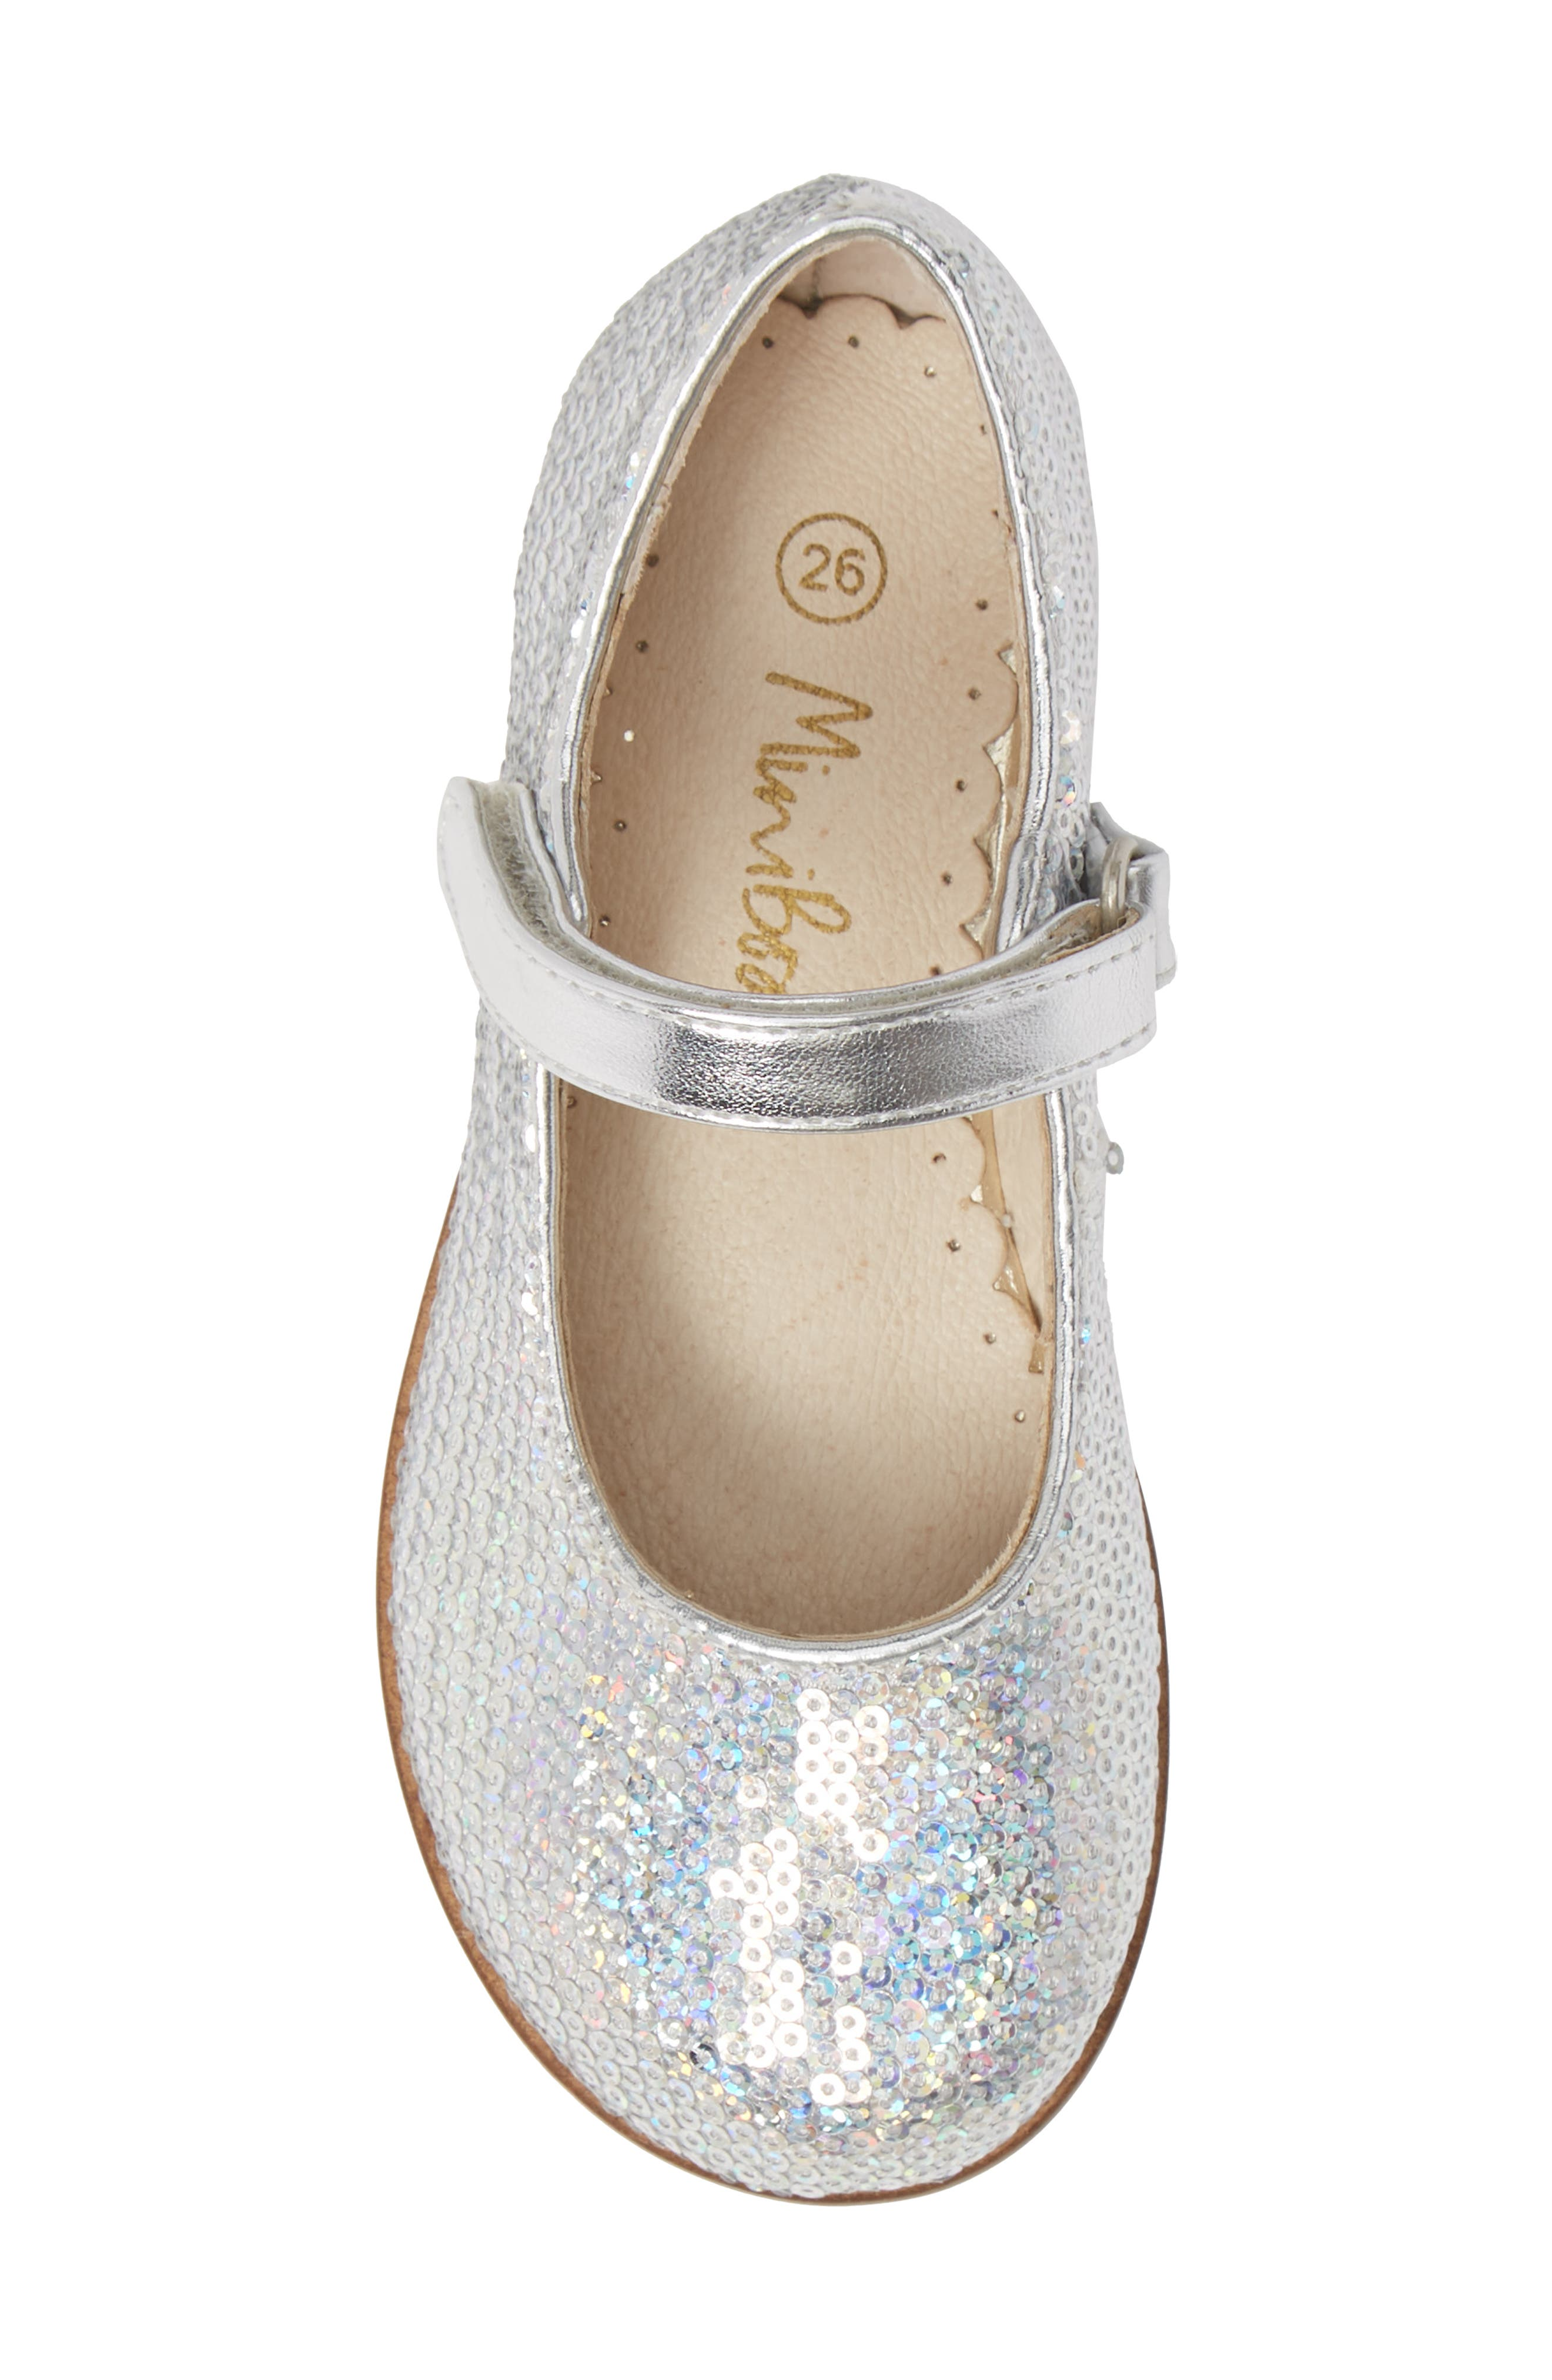 Sequin Mary Jane,                             Alternate thumbnail 5, color,                             IRIDESCENT SILVER